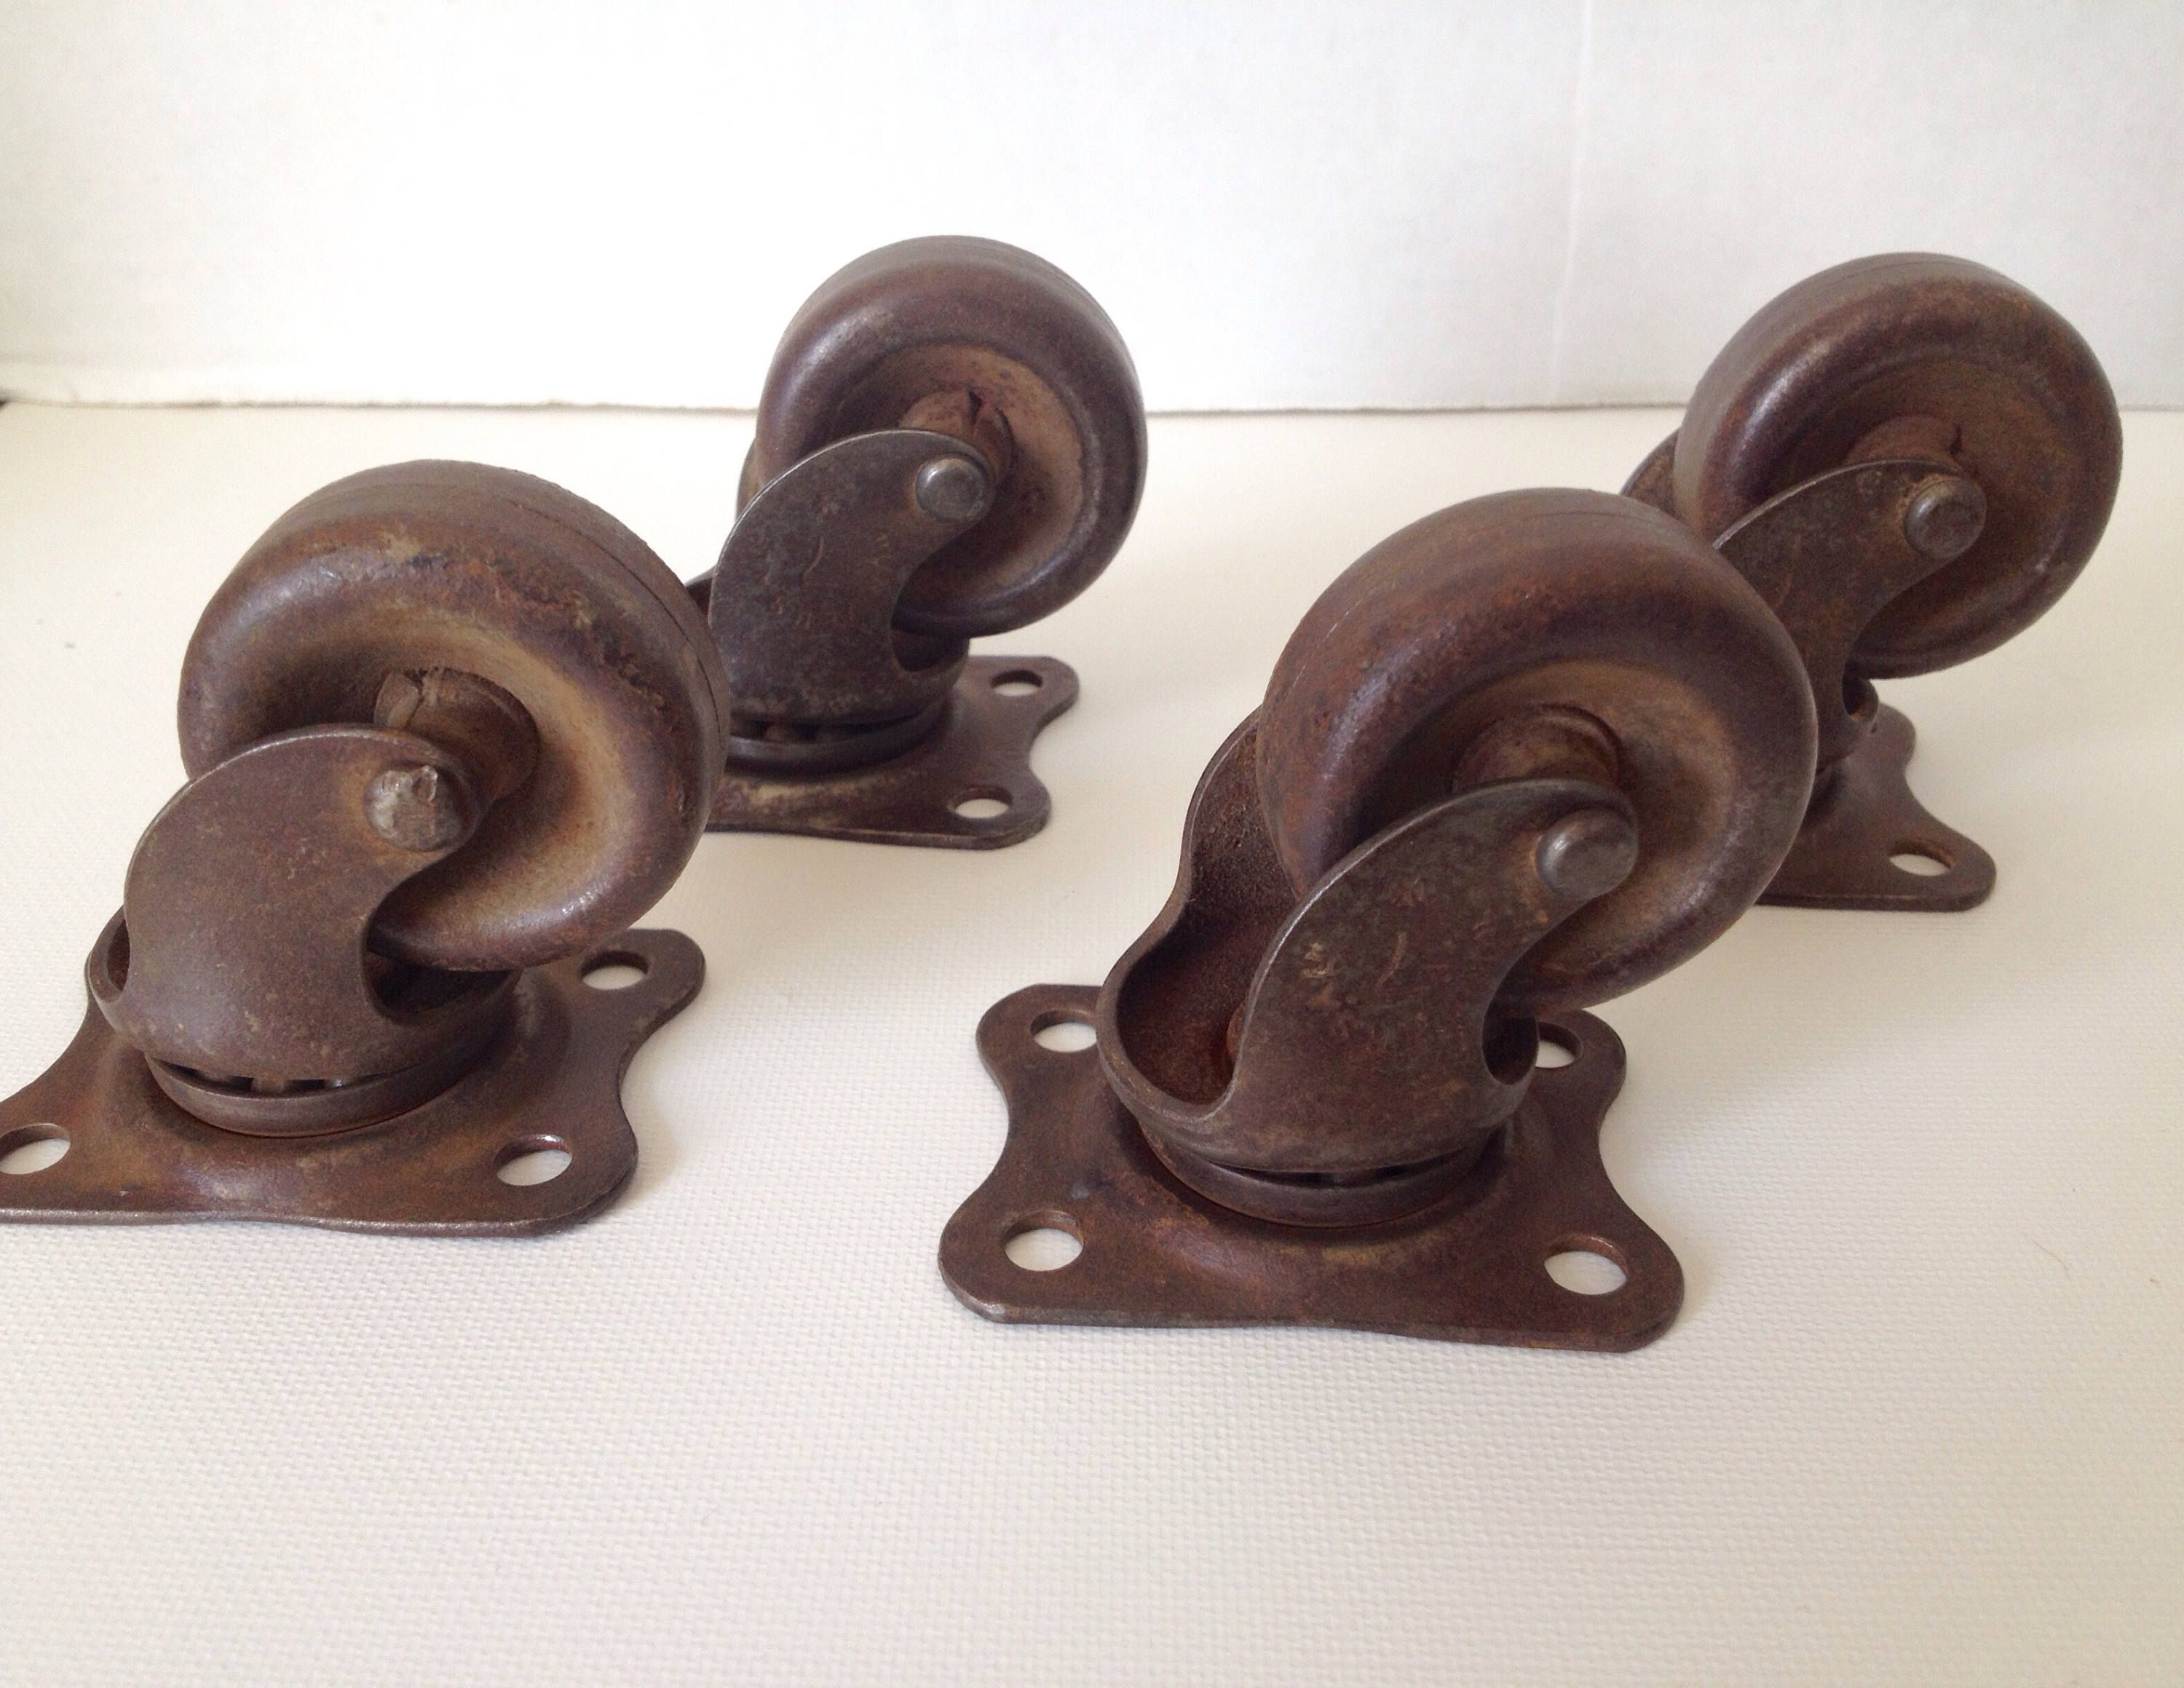 Antique Casters Lot Of 4 Industrial Rotating 1 1 2 Inch Wheel Marked Universal 7 Vintage Hardware By Arou Vintage Hardware Metal Casters Architectural Pieces